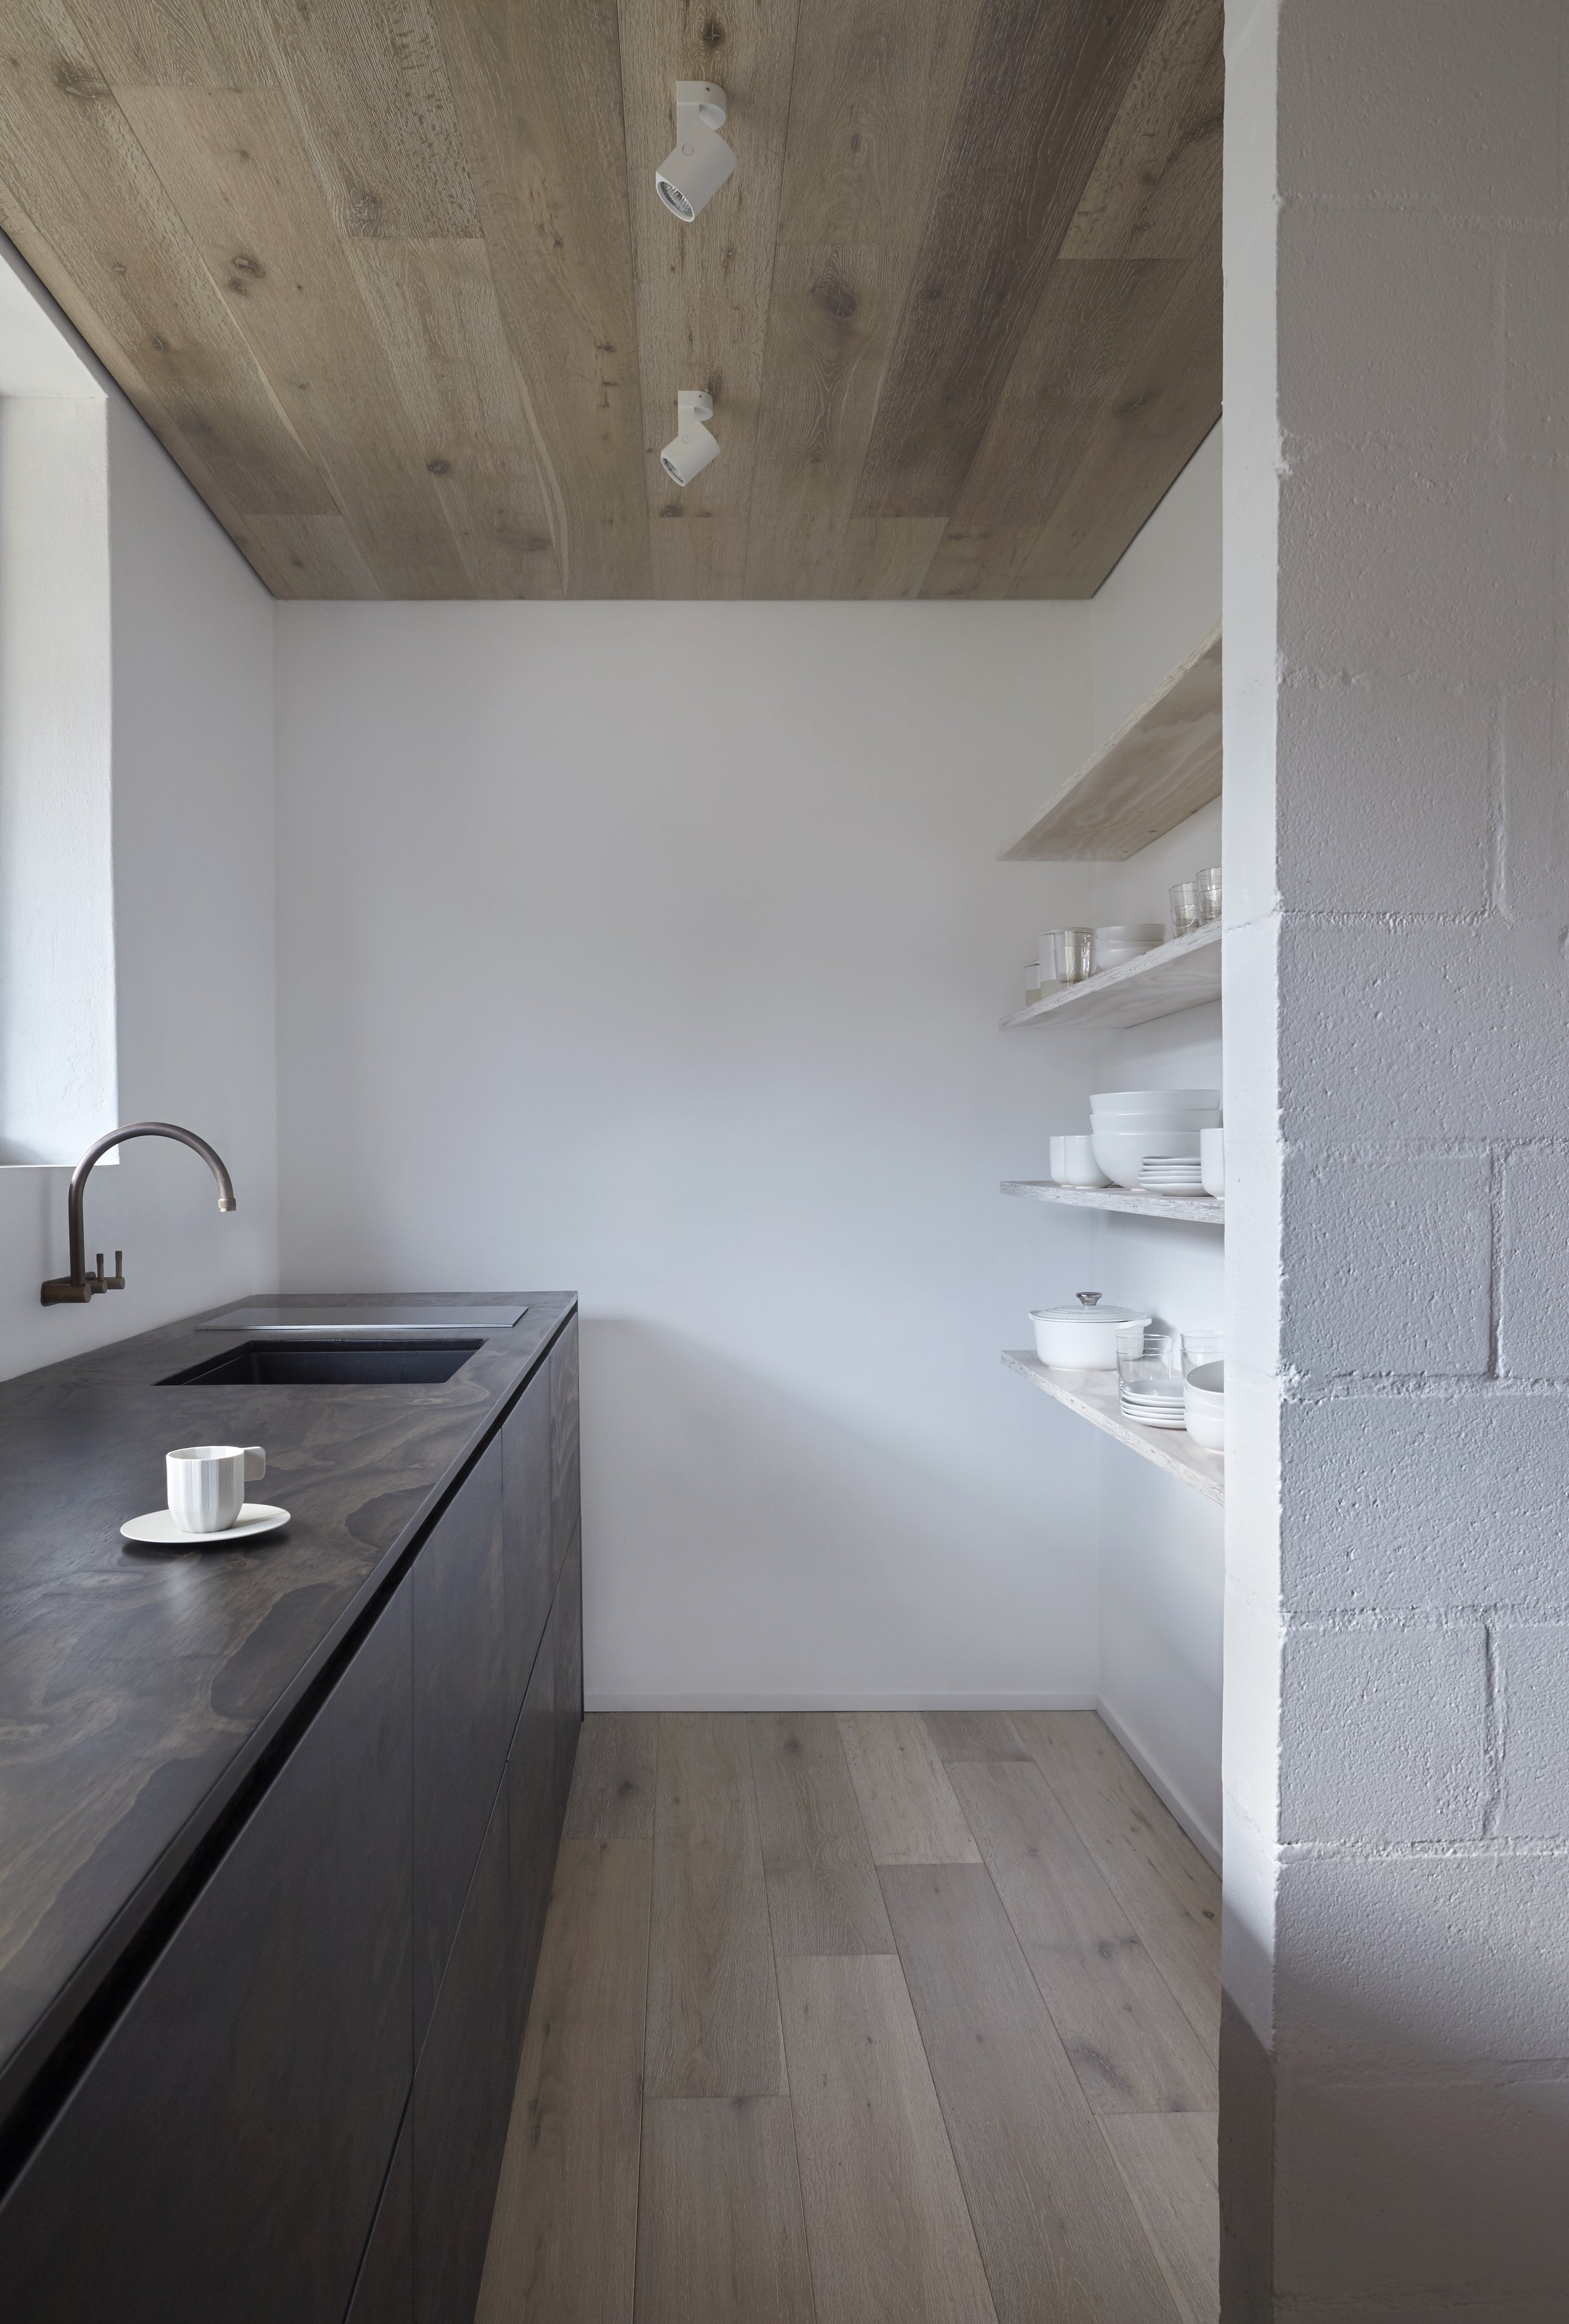 Overlooking High Noon, the studio space comes complete with soft linen bedding, kitchen with integrated appliances and a bathroom clad in Italian stone. Heaven!